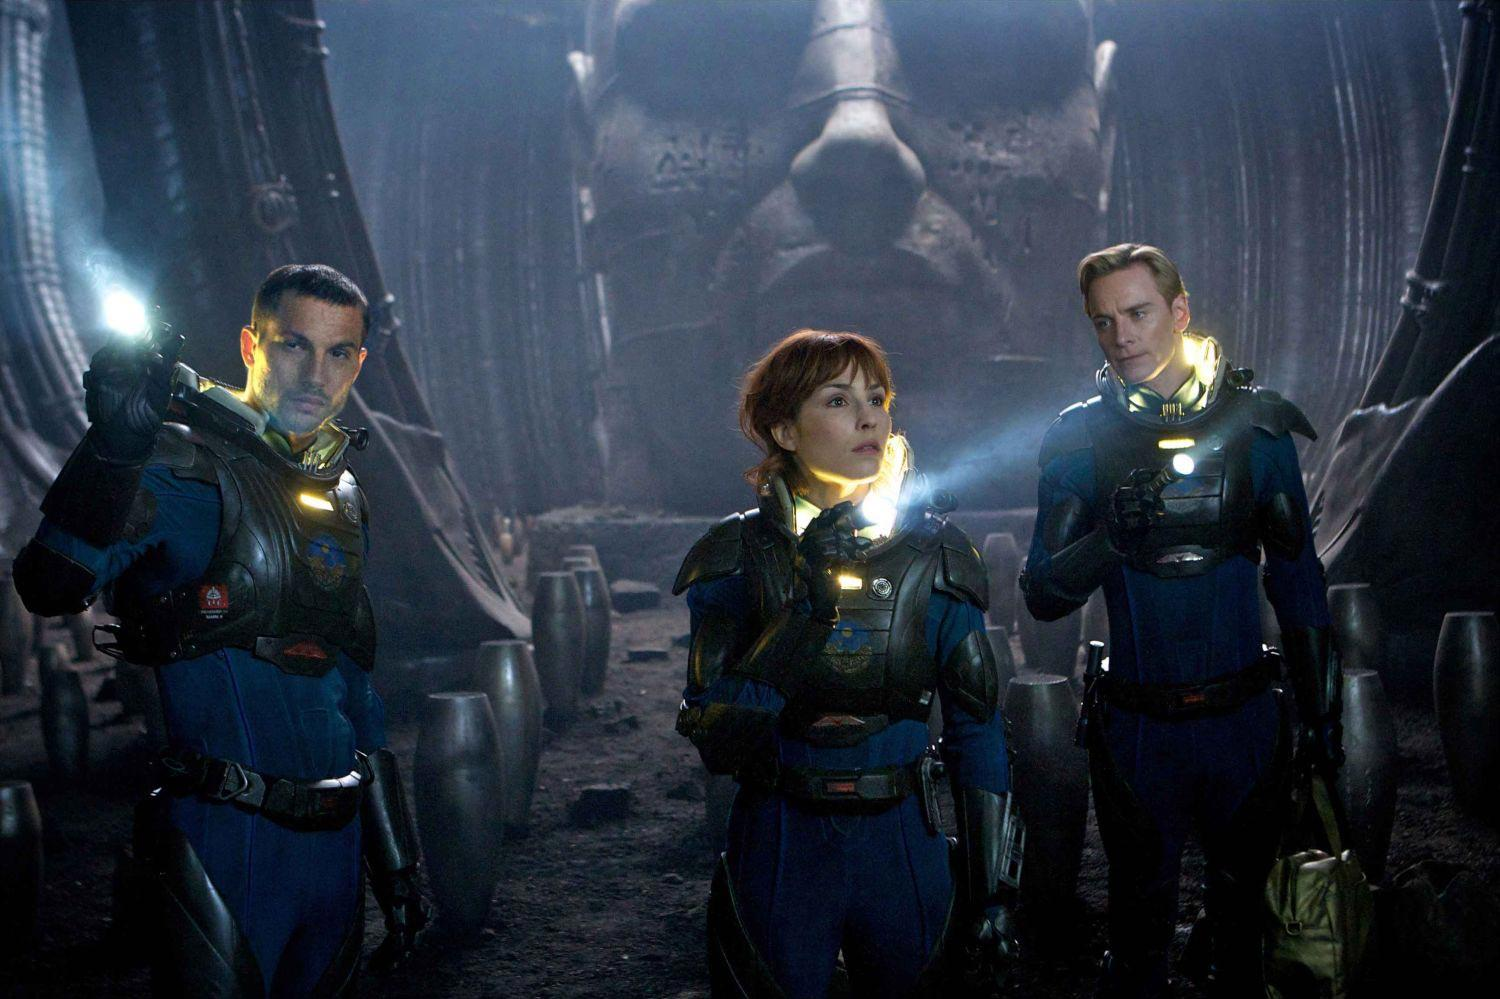 uploads_d45fb13b-60c7-44d7-8ecb-7f731bda31d0-Prometheus_movie_05